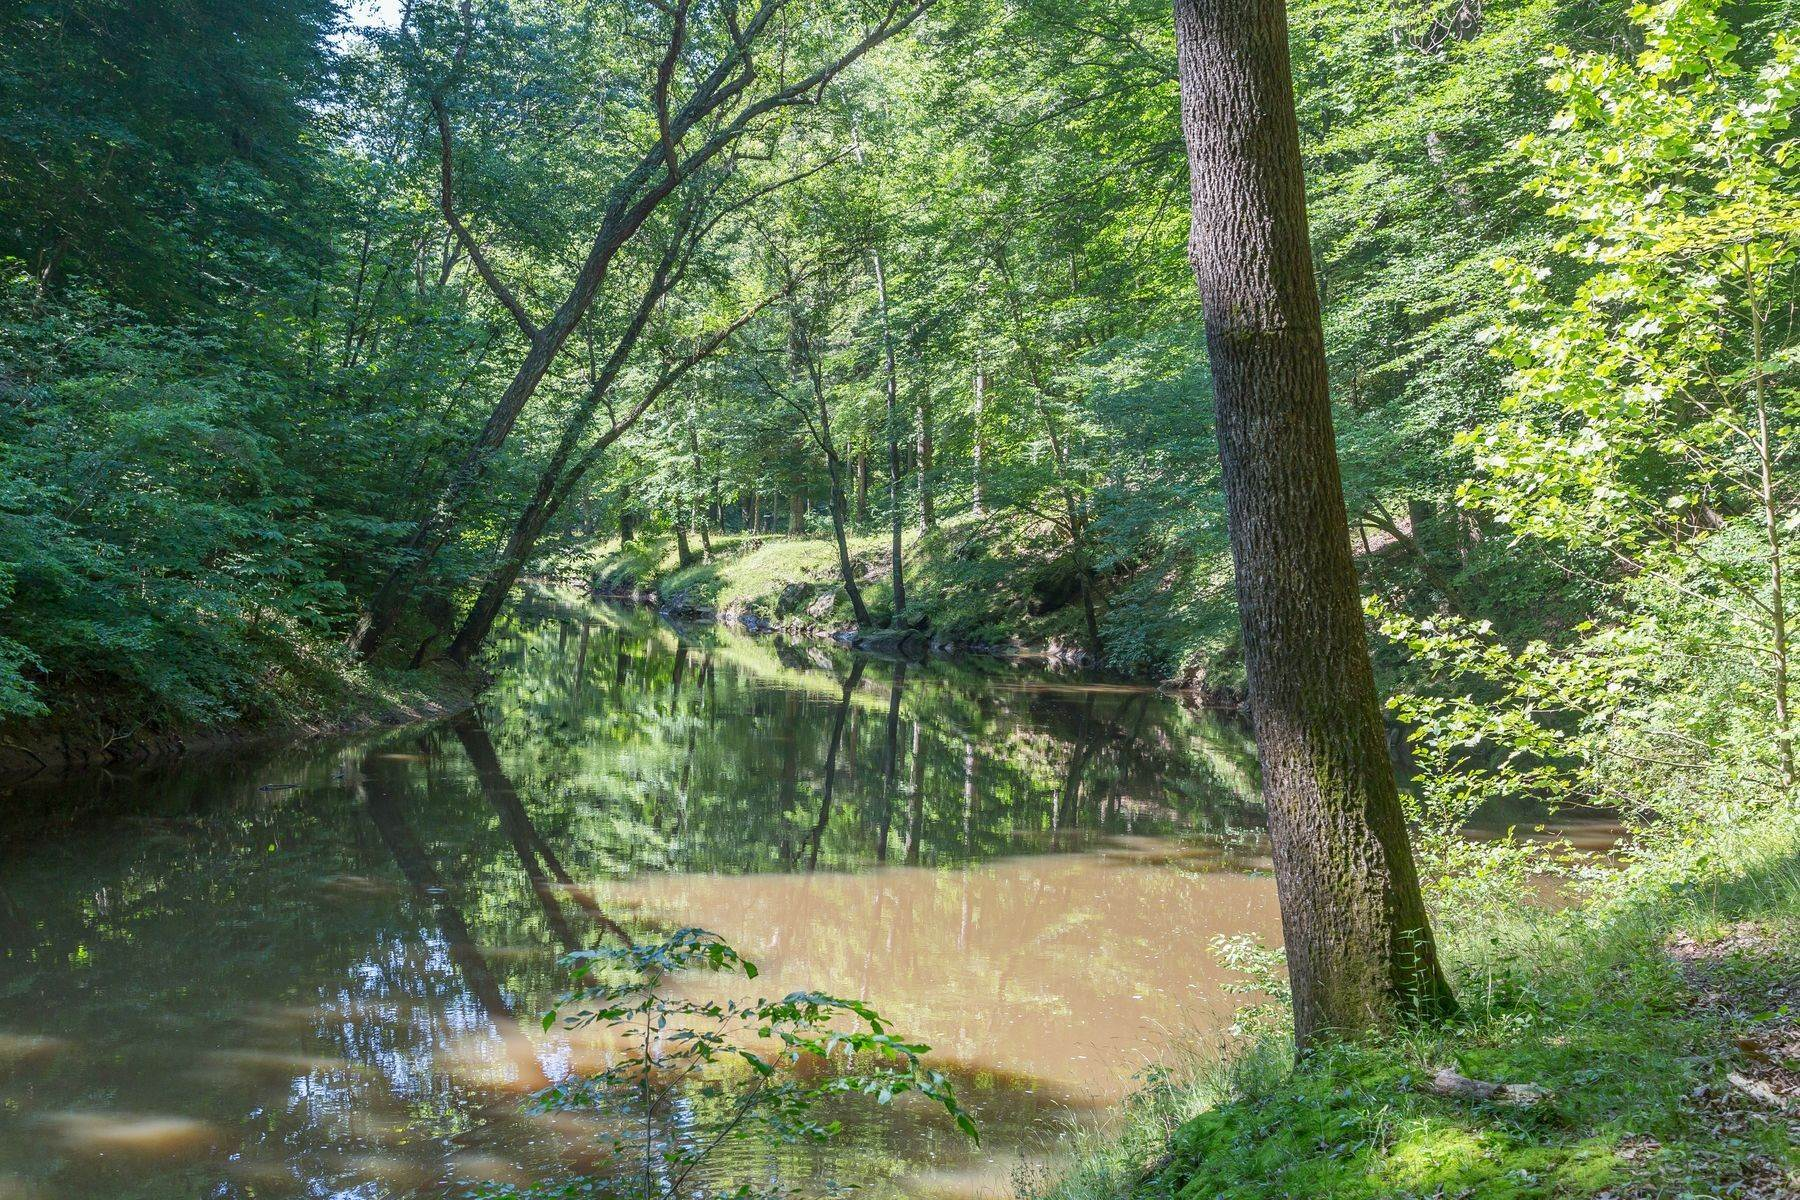 15. Property for Sale at Gardner Farm 792 E Old Mountain Rd Mineral, Virginia 23117 United States